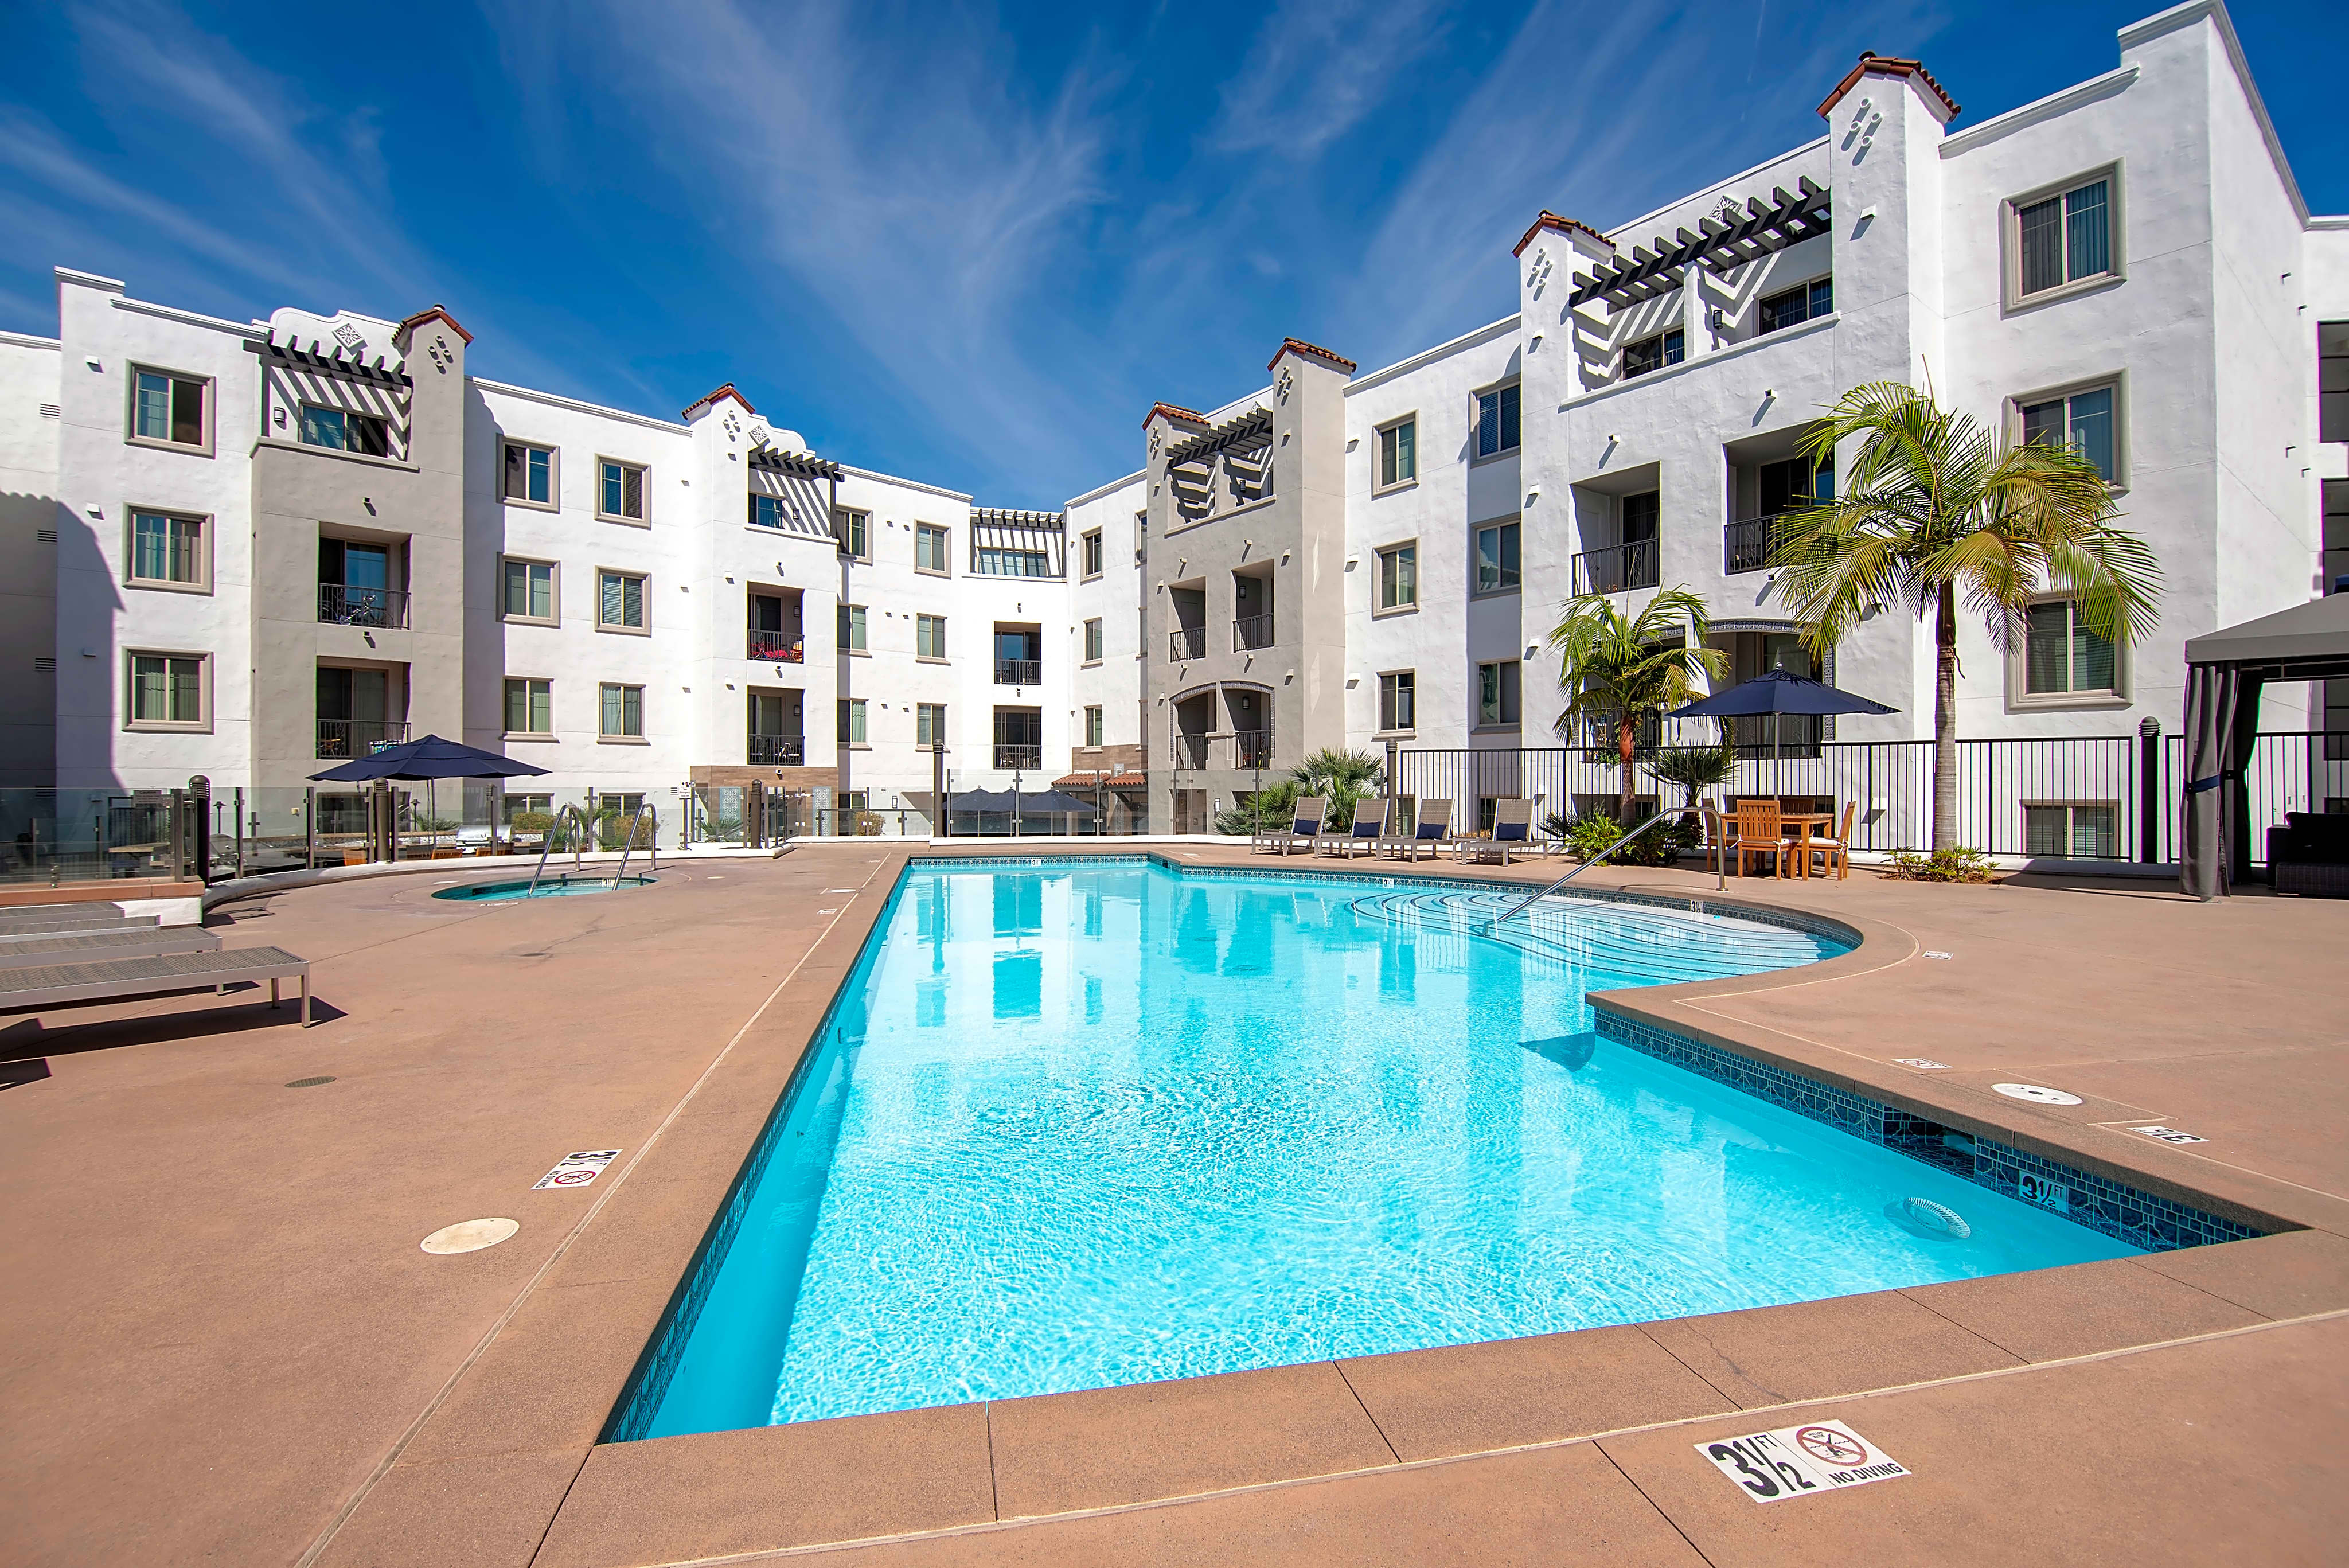 Apartments Near National University Arrive at Mission Valley for National University Students in San Diego, CA